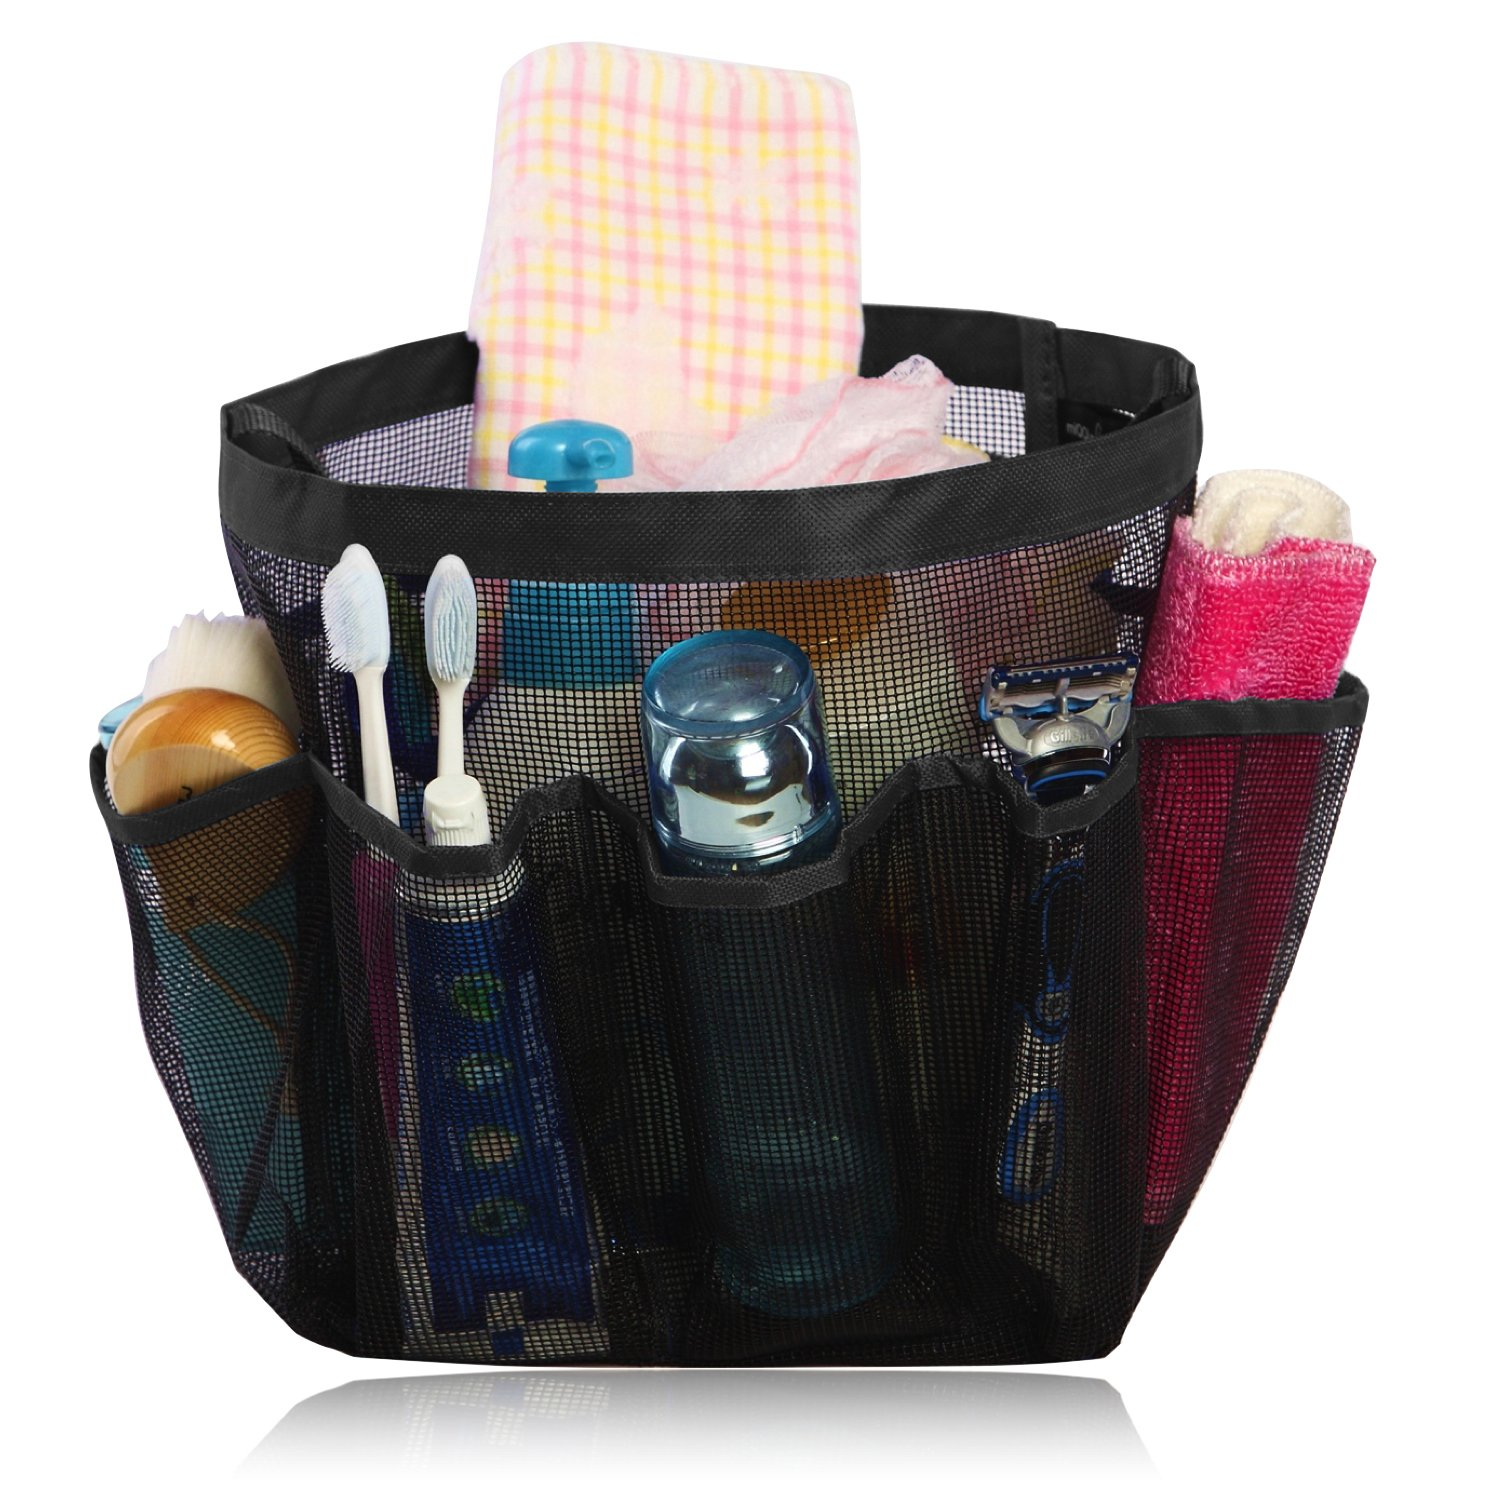 Amazon.com: miQQi Living Large Pockets Shower Caddy for Bathroom ...